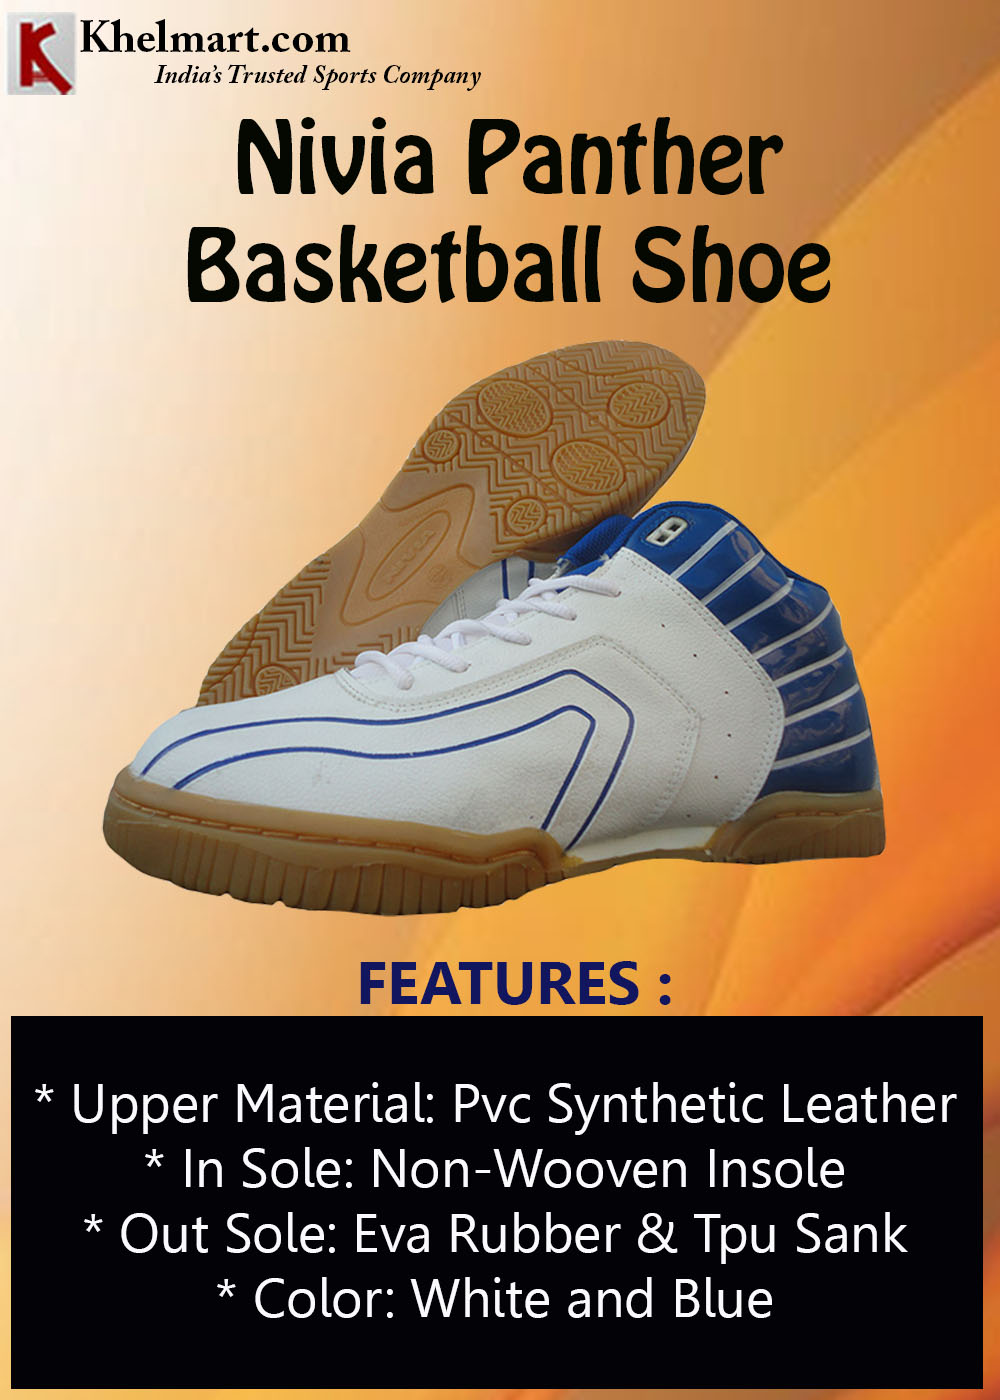 Nivia Panther Basketball Shoe